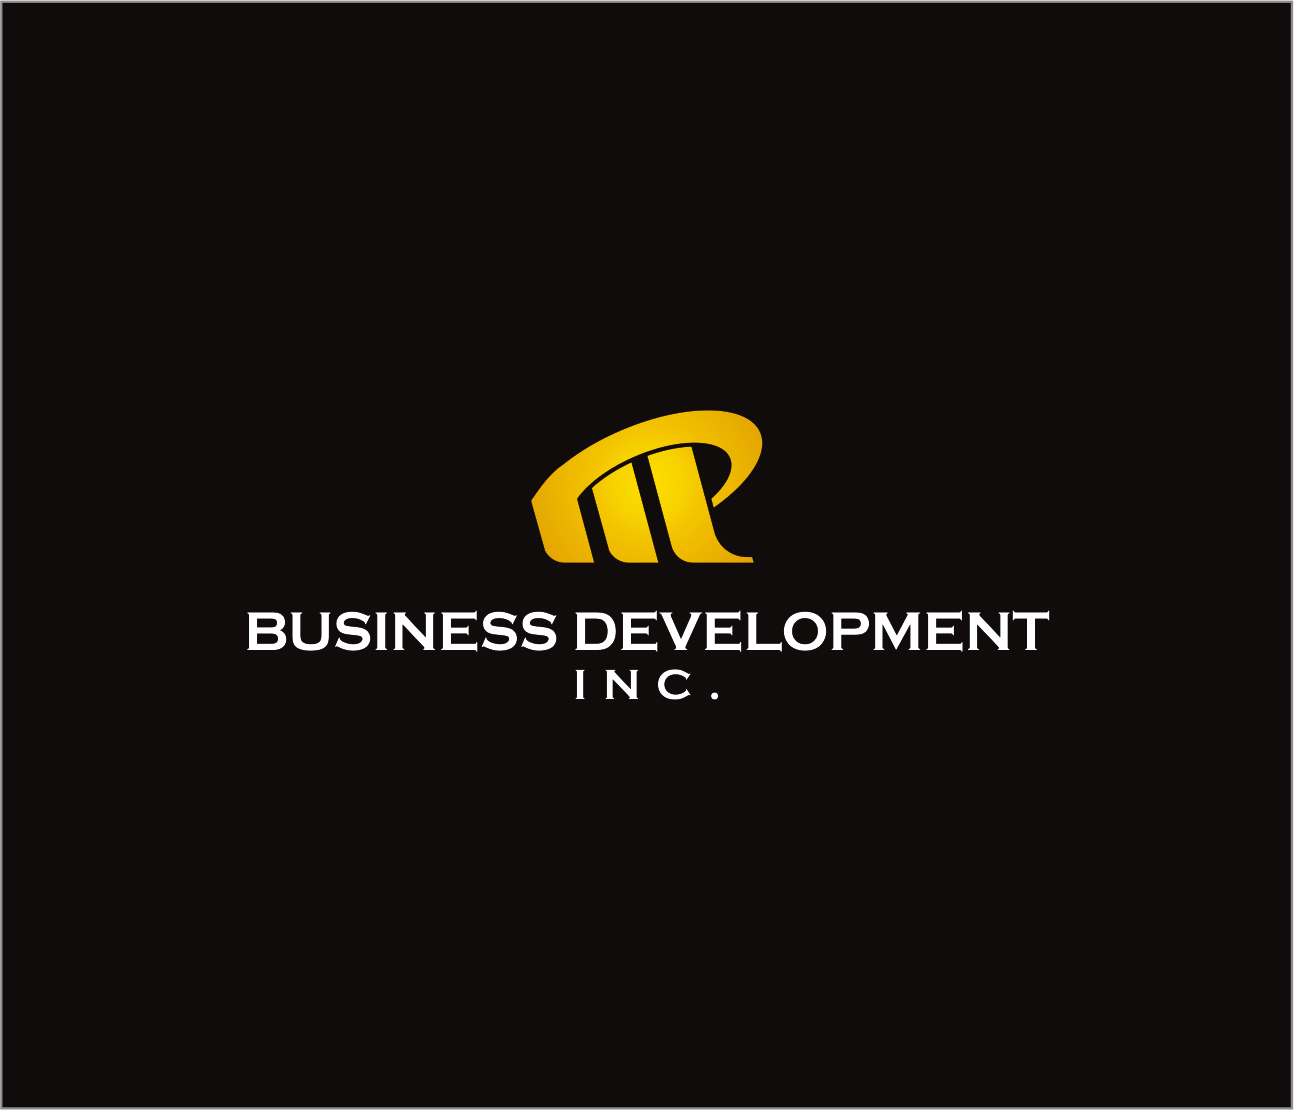 Logo Design by Armada Jamaluddin - Entry No. 67 in the Logo Design Contest MP Business Development Inc. Logo Design.